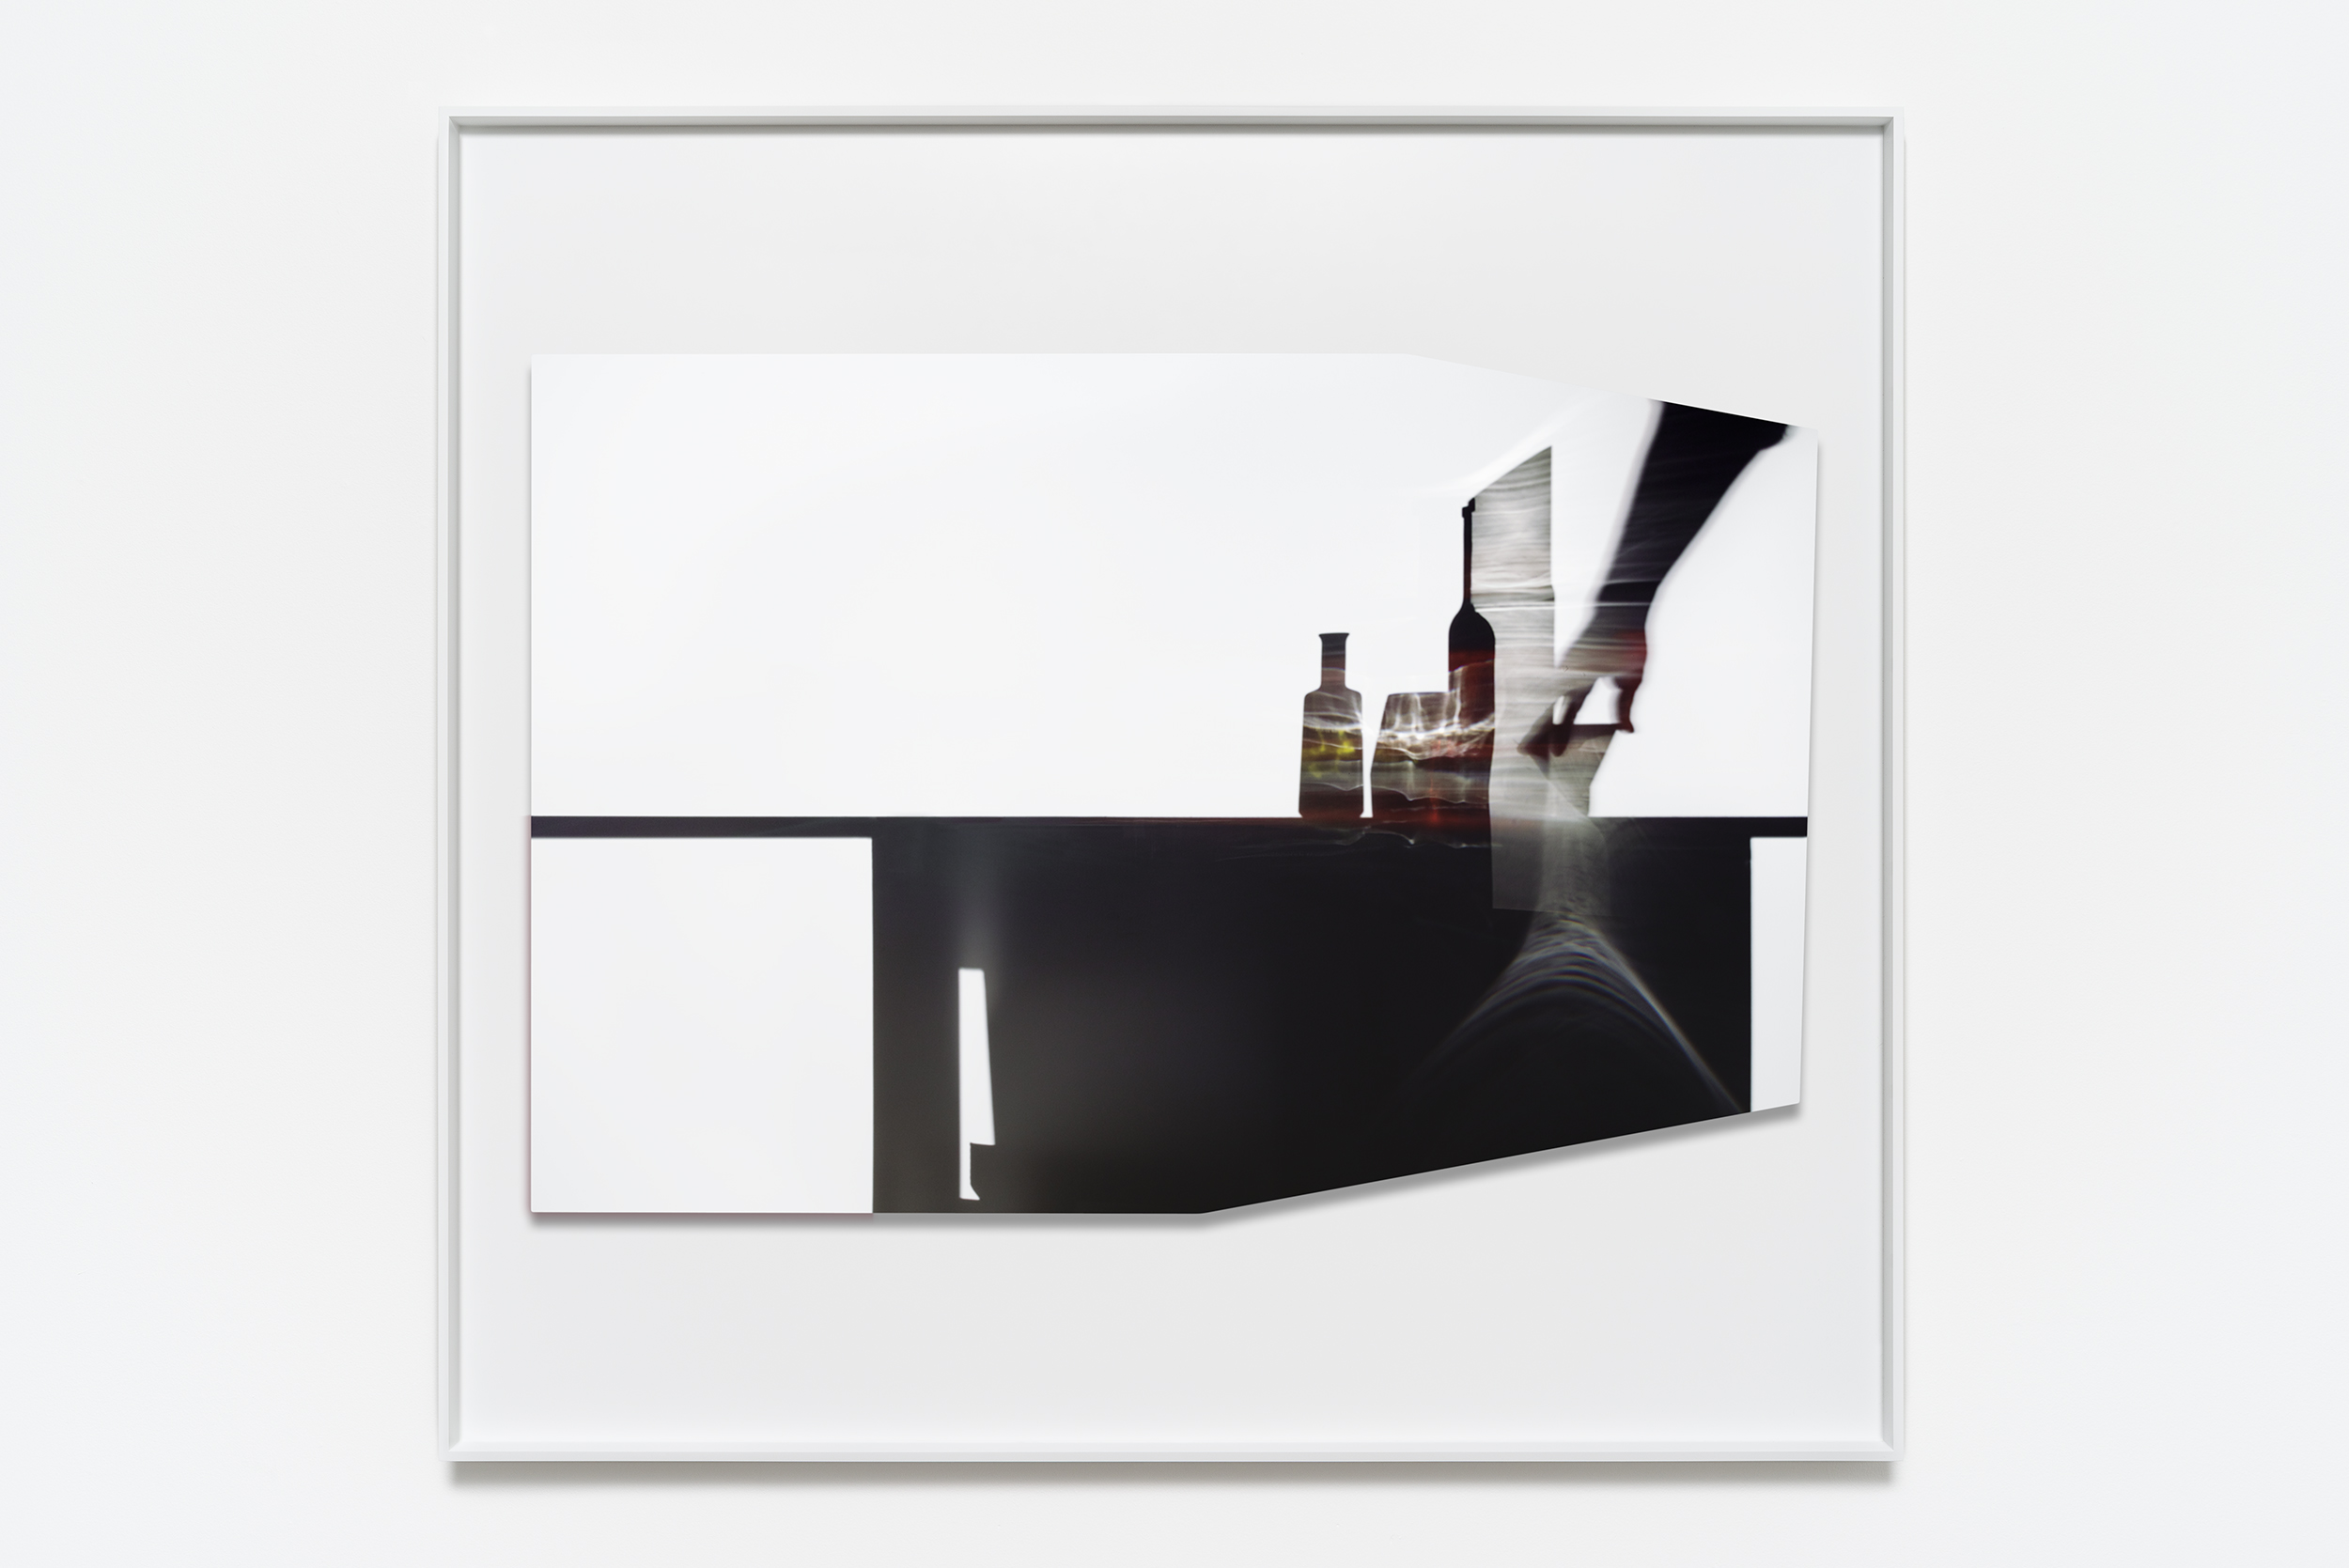 Uta Barth  In the Light and Shadow of Morandi (17.01) , 2017 Face mounted, raised, shaped, Archival Pigment print in artist frame 123.8 x 134 x 4.4 cm 48 3/4 x 52 3/4 x 1 3/4 in Photo: © Uta Barth Courtesy of 1301PE